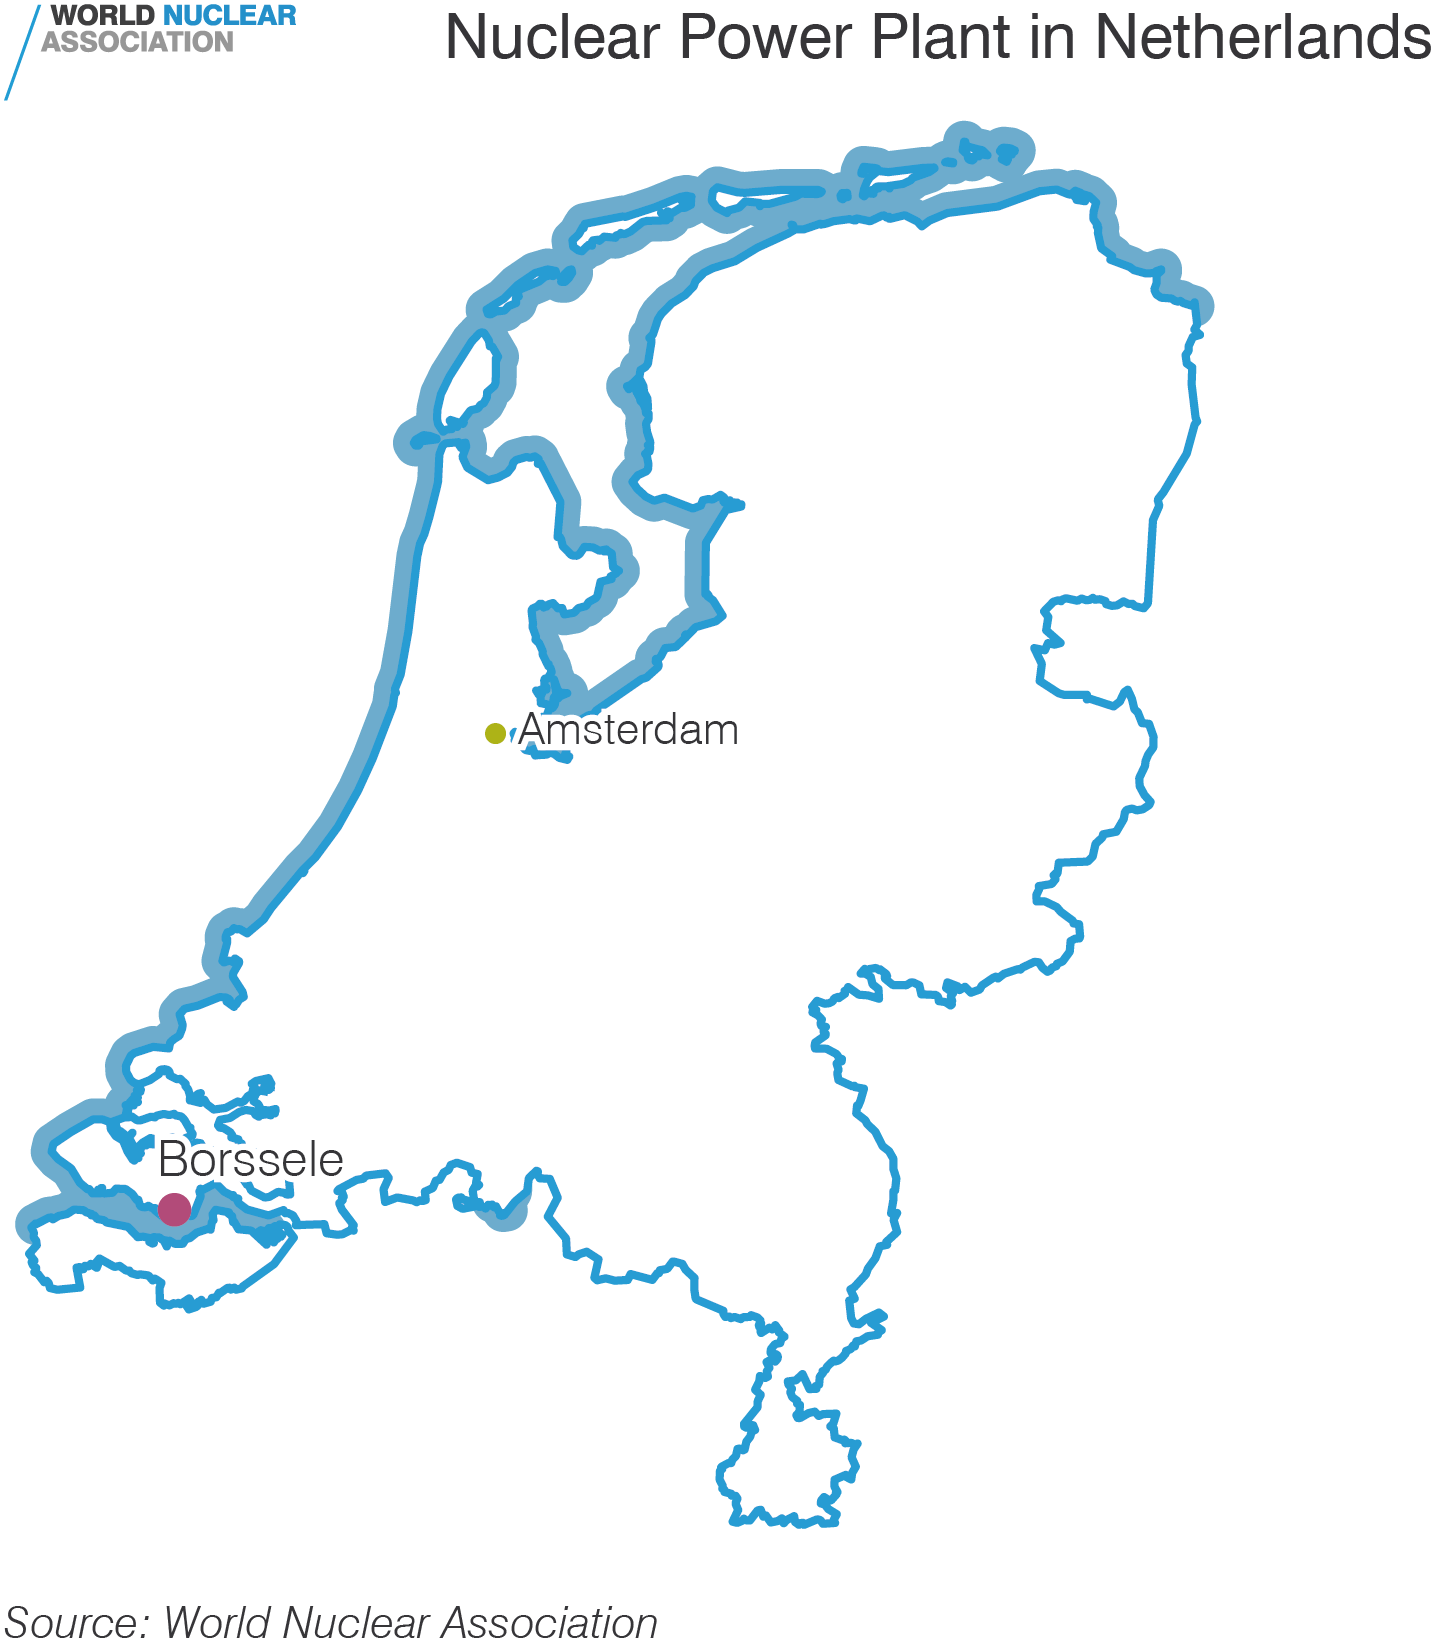 Nuclear Power Plant in Netherlands